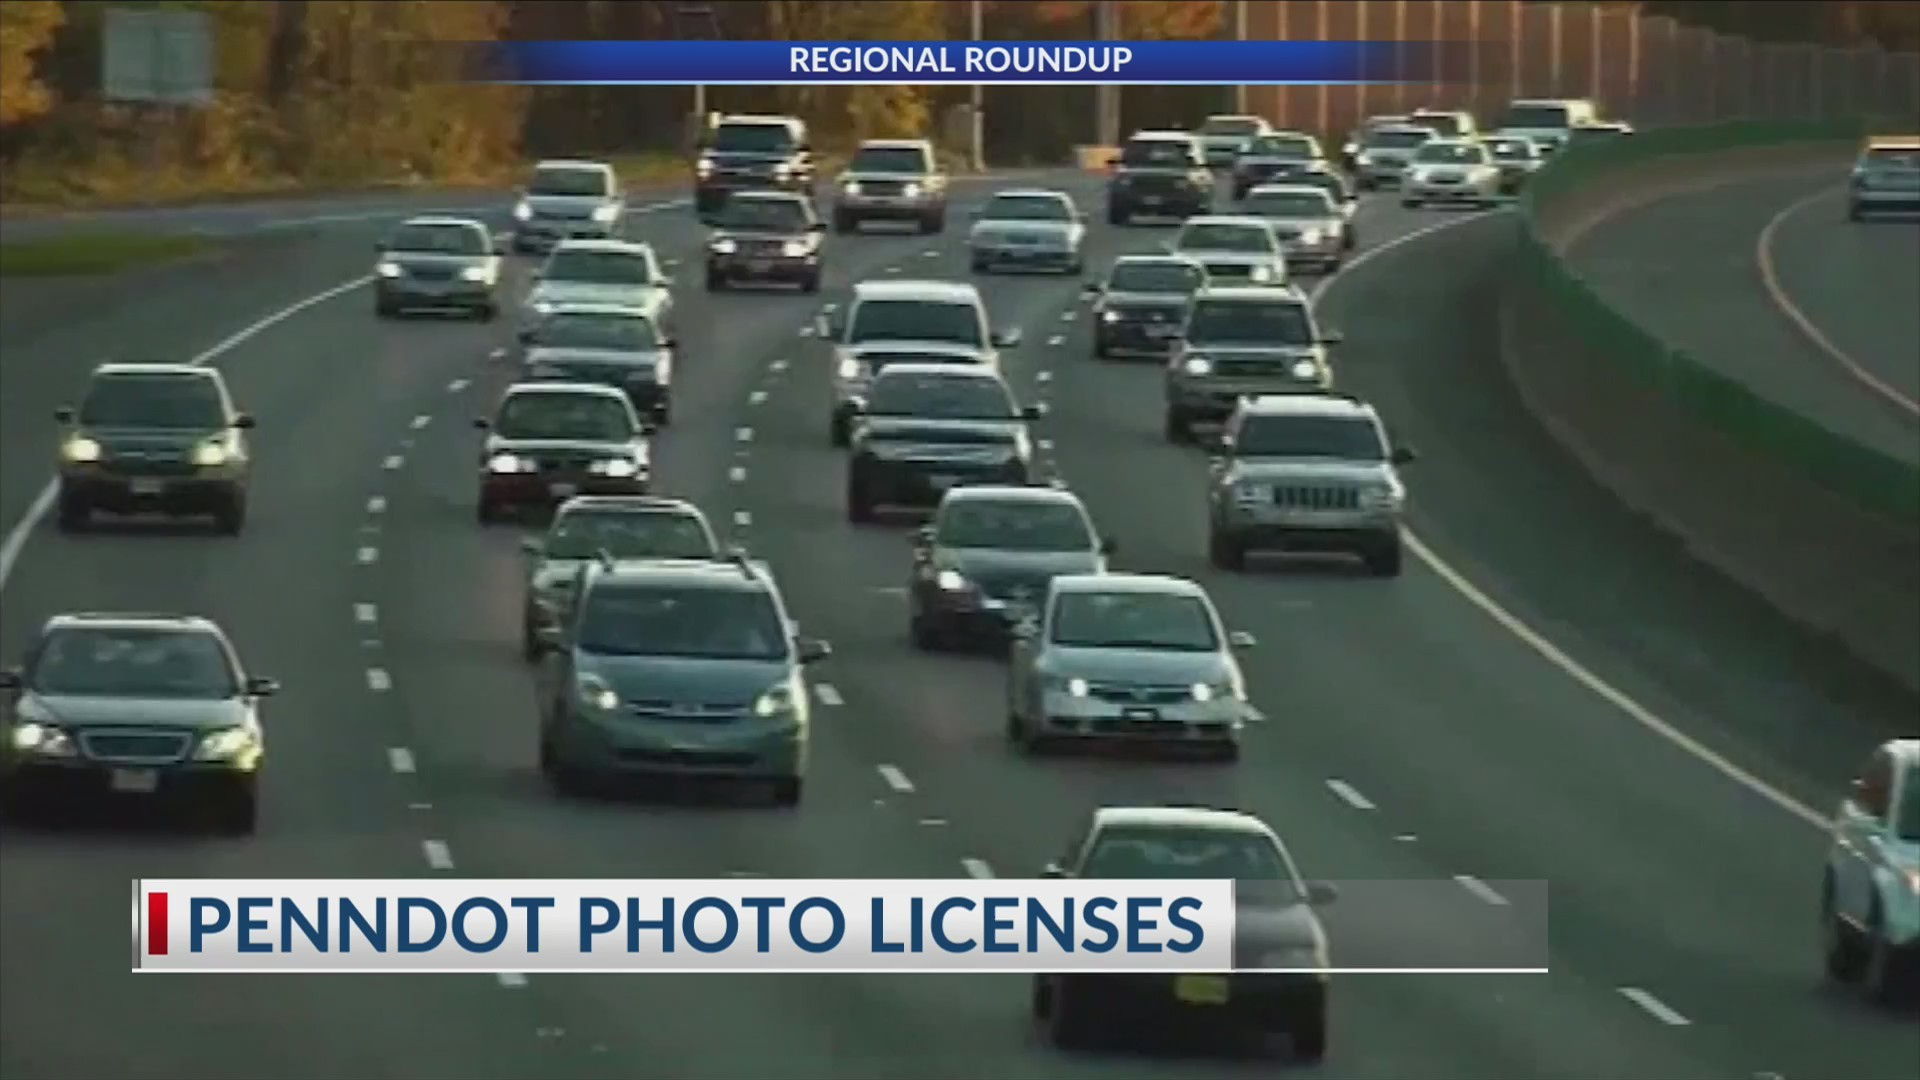 PennDOT Photo Licenses